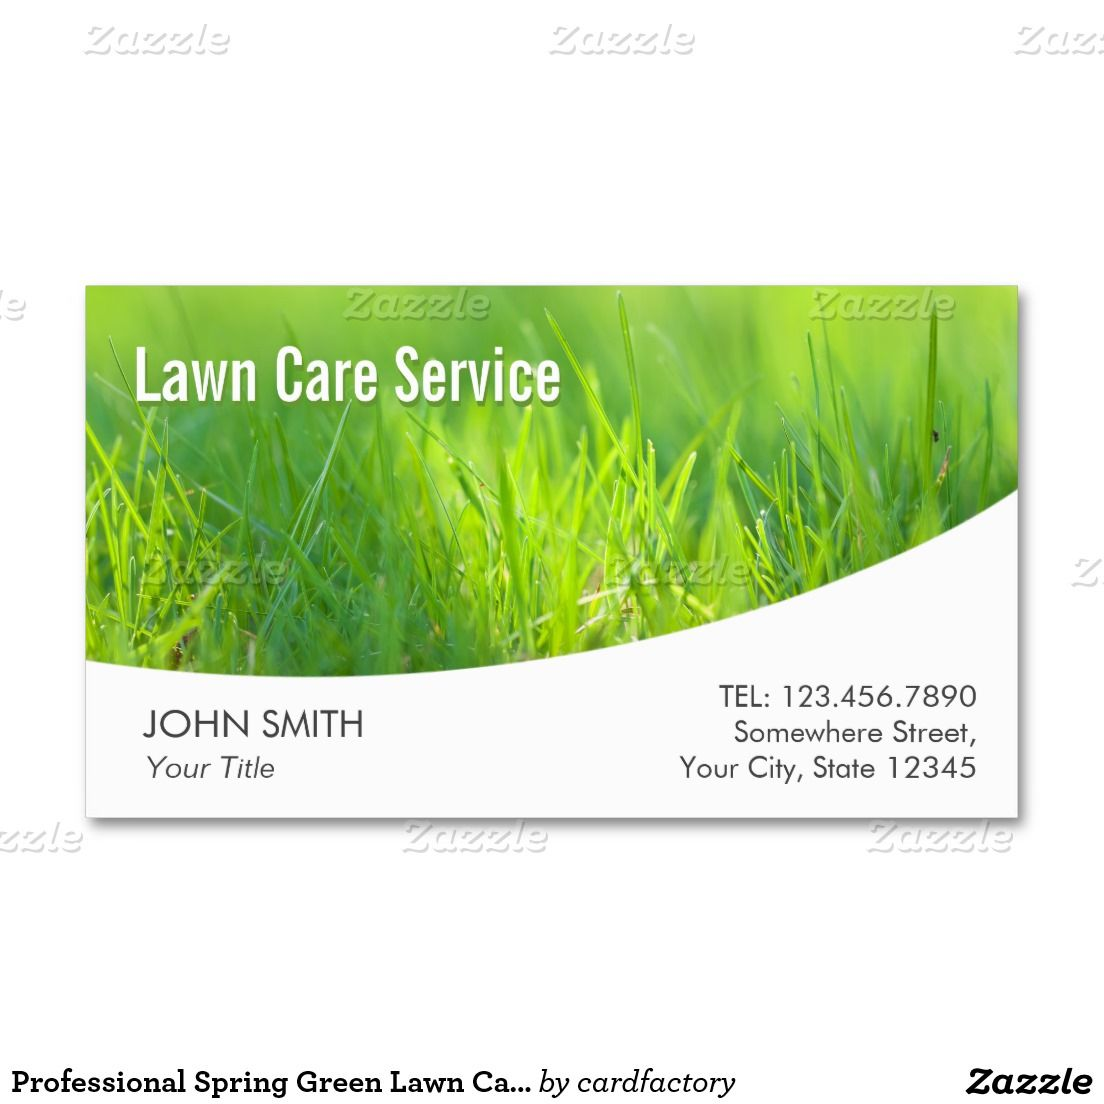 Professional Spring Green Lawn Care Business Card | Landscaping ...